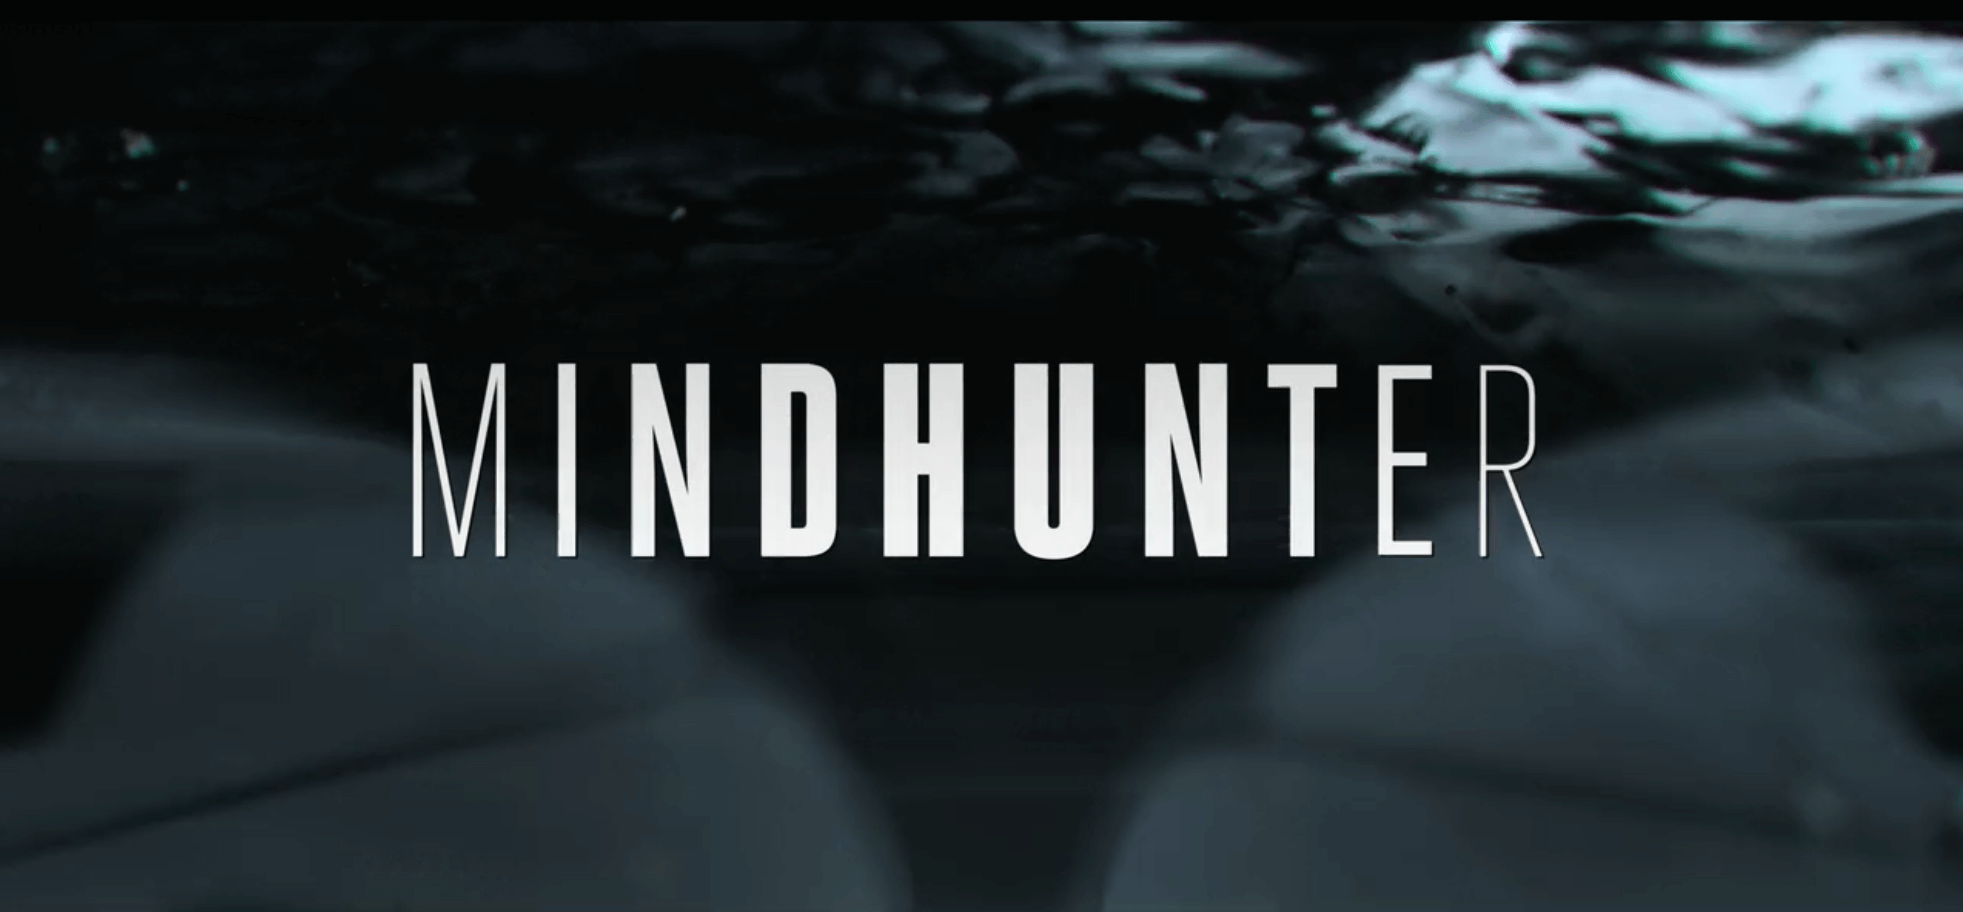 Text Graphics in Video - Top Trends - Mindhunter